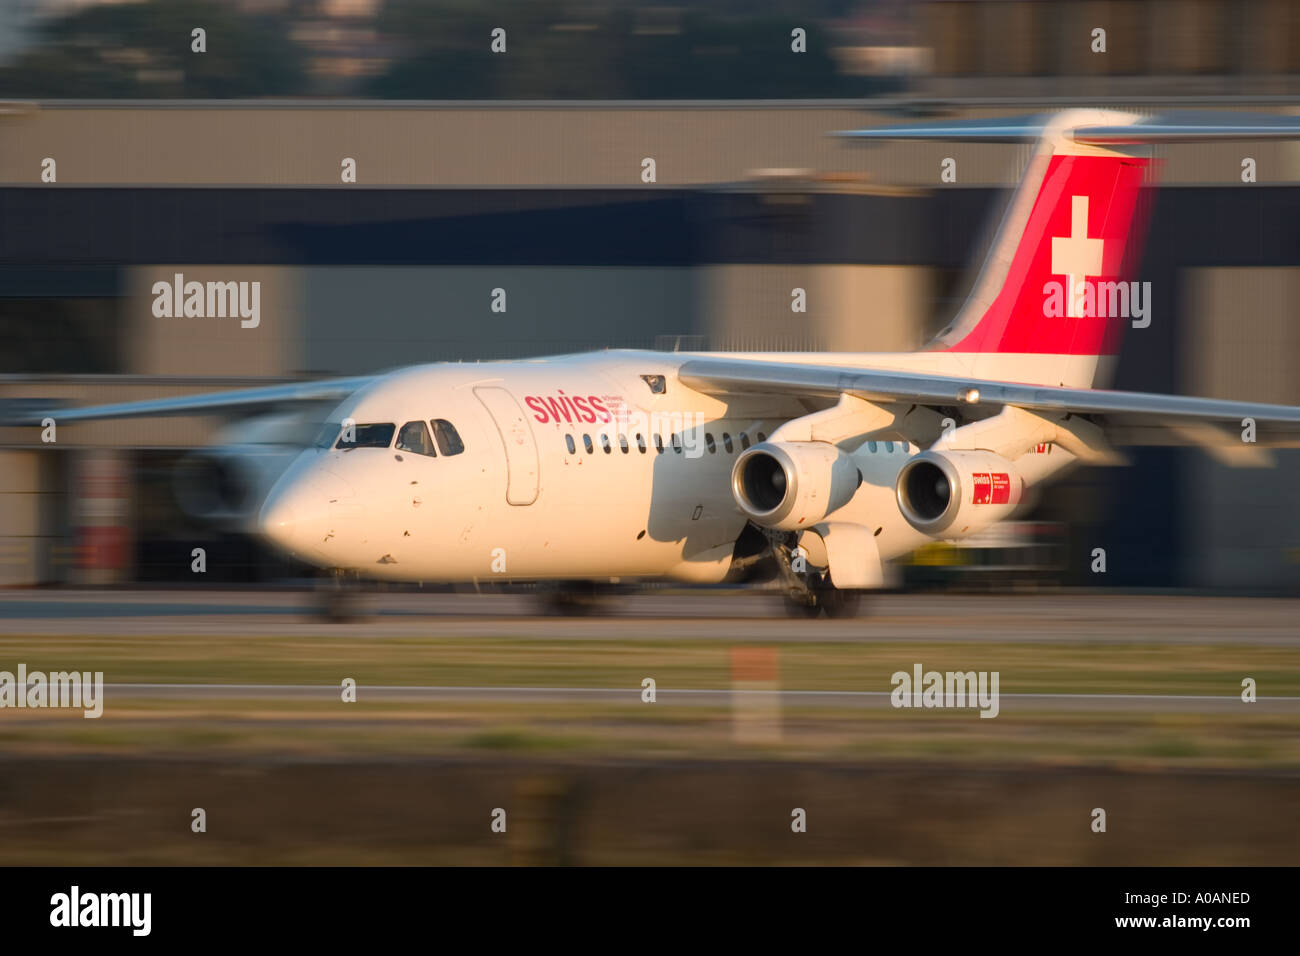 Swiss International Air Lines British Aerospace Avro RJ 100 146 RJ100 at London City UK Stock Photo